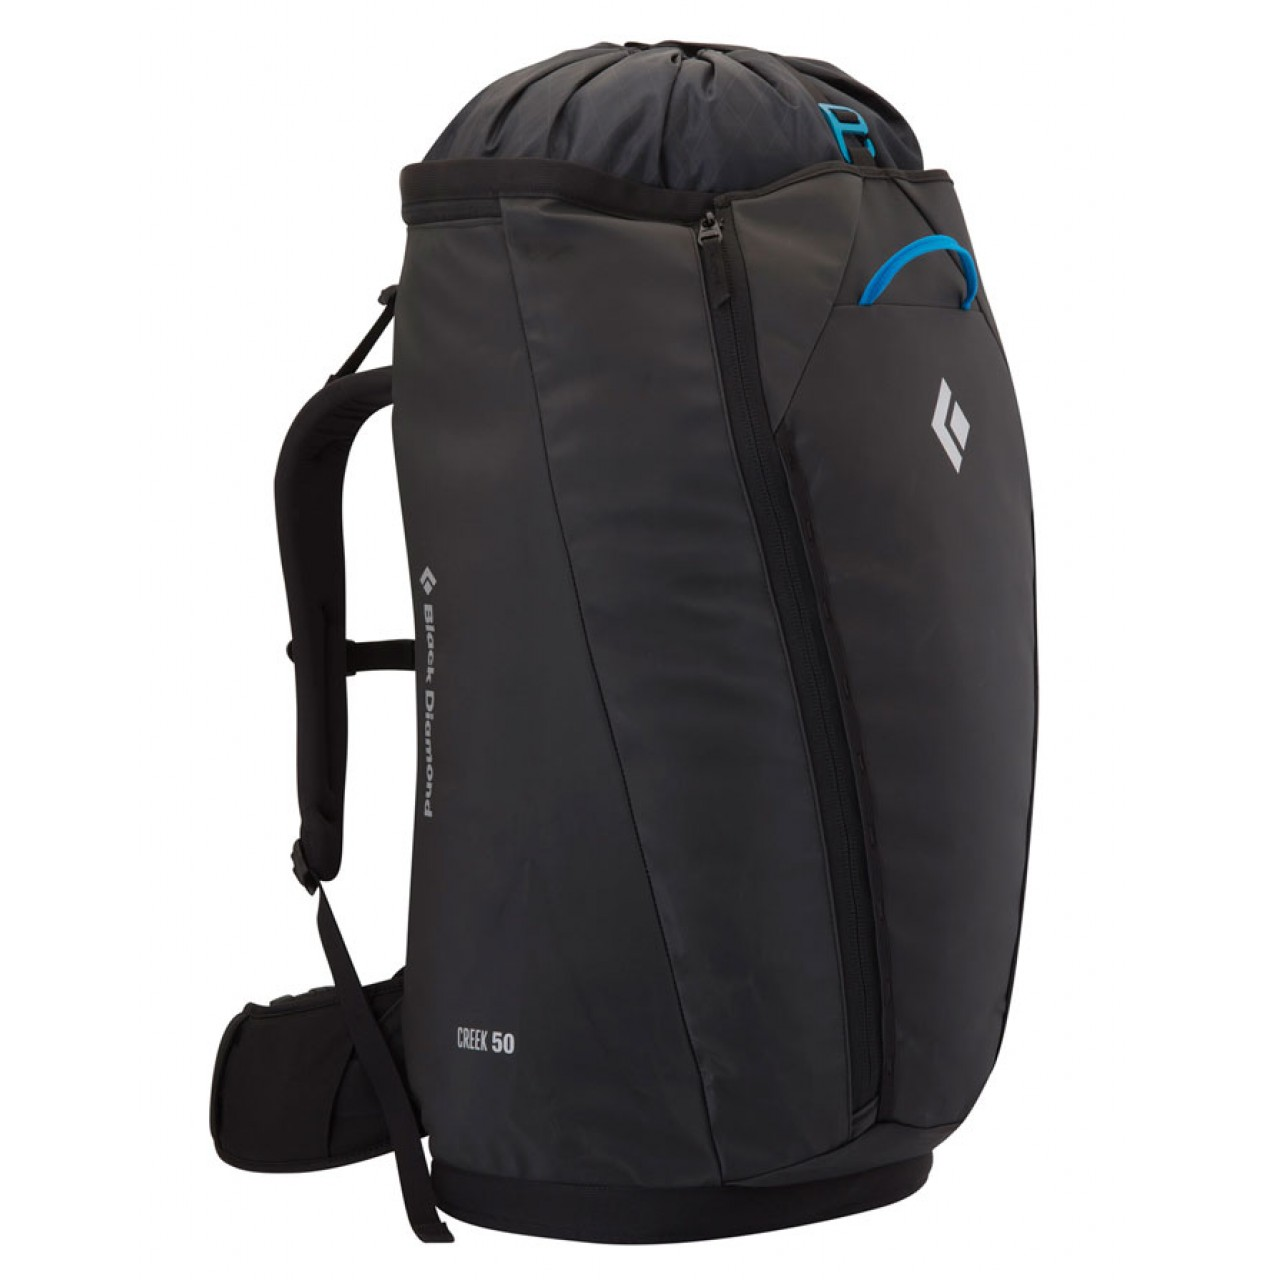 diamond creek black dating site The black diamond creek 20 is our top pick for durability this utilitarian bag is an excellent choice for climbers who might want to take more than the bare minimum up a route and are willing to carry a bit more weight in exchange for a pack that will last a significantly longer.